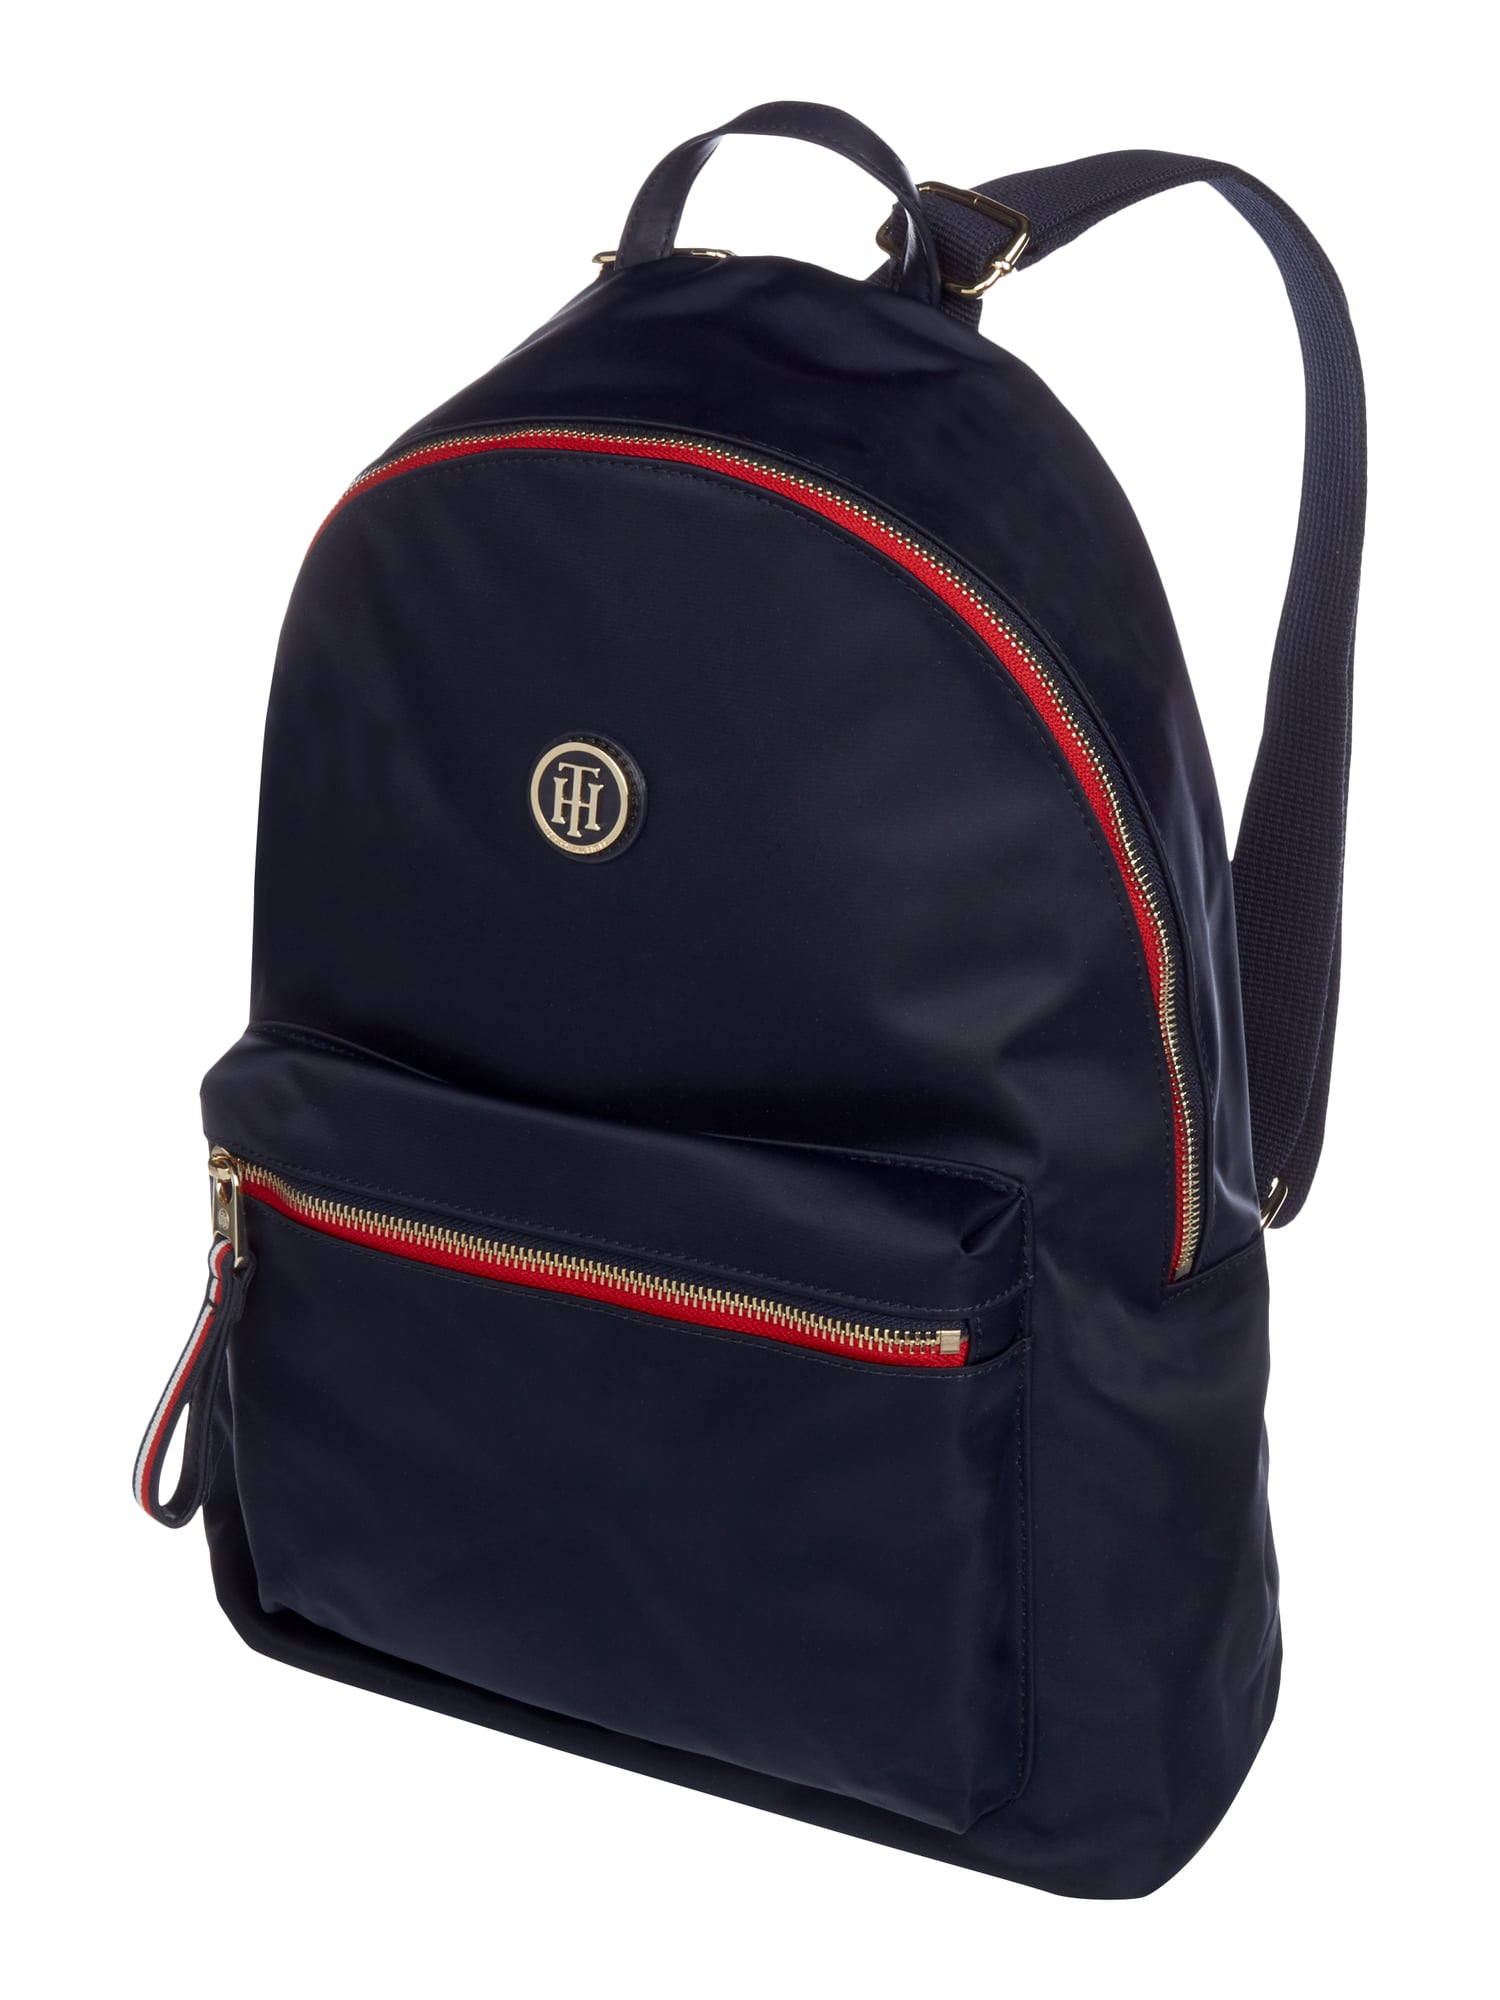 tommy hilfiger rucksack mit gepolstertem tabletfach in. Black Bedroom Furniture Sets. Home Design Ideas